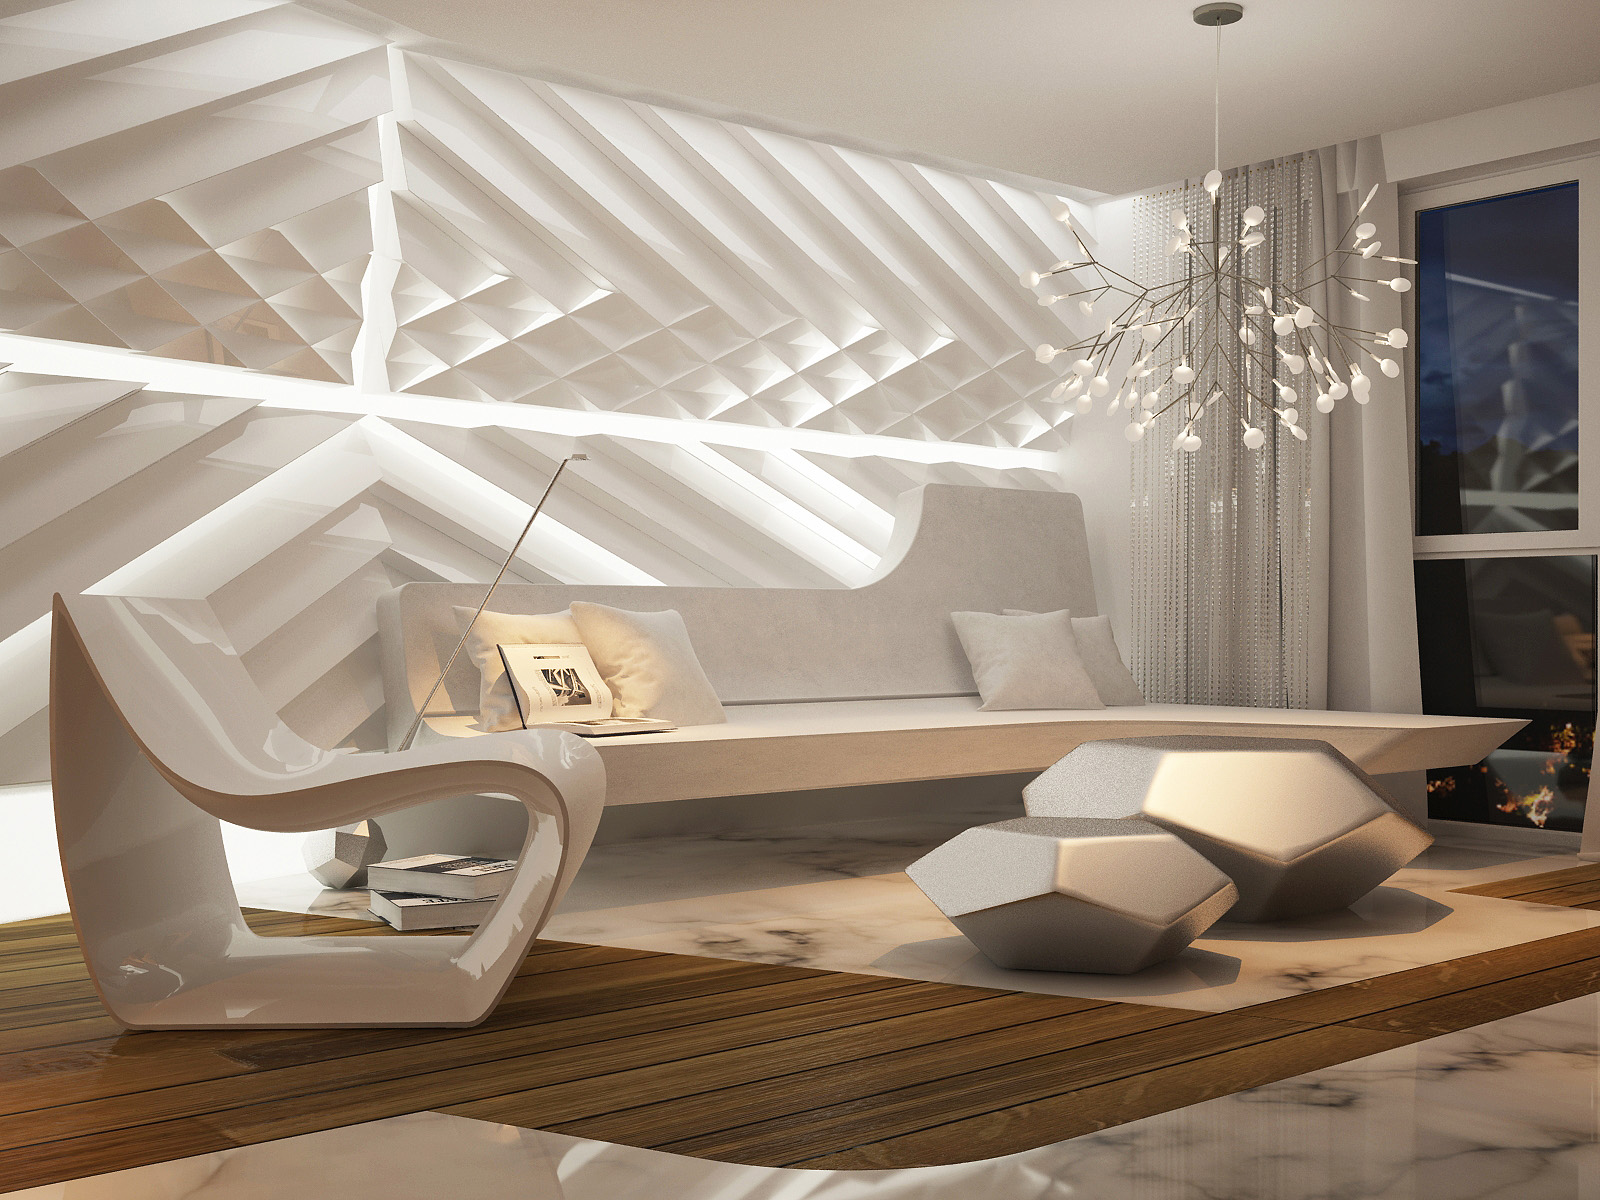 Futuristic interior design for Some interior design ideas